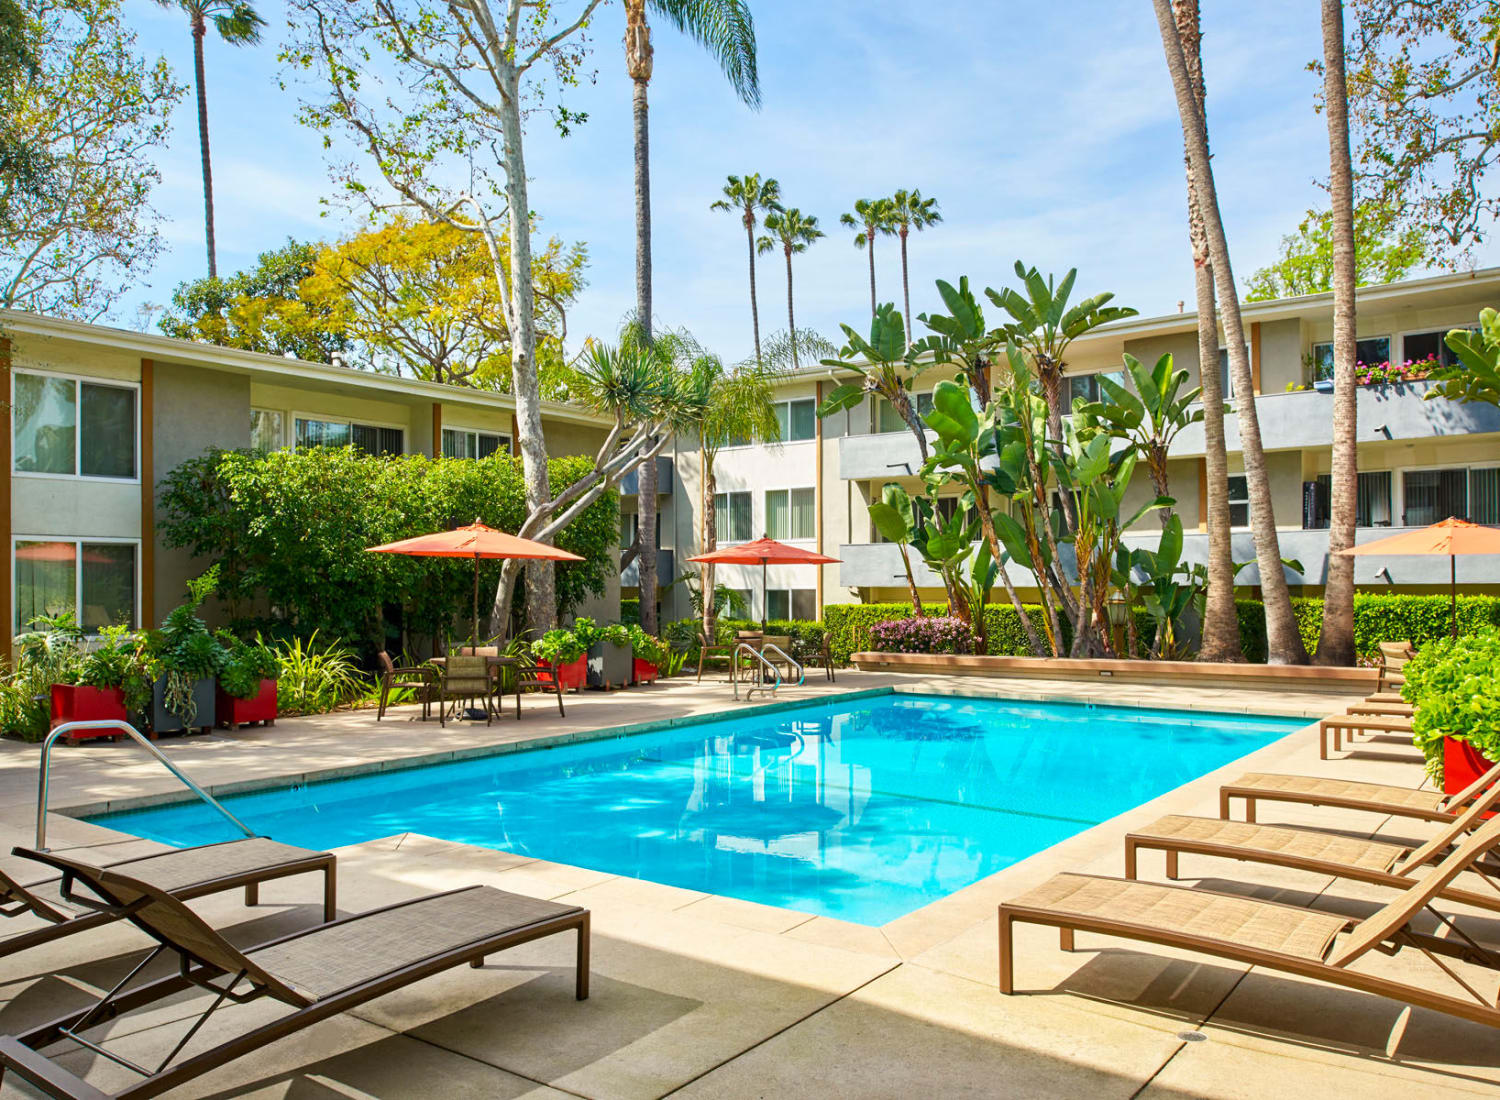 Palm trees and lounge chairs around the resort-style swimming pool at West Park Village in Los Angeles, California